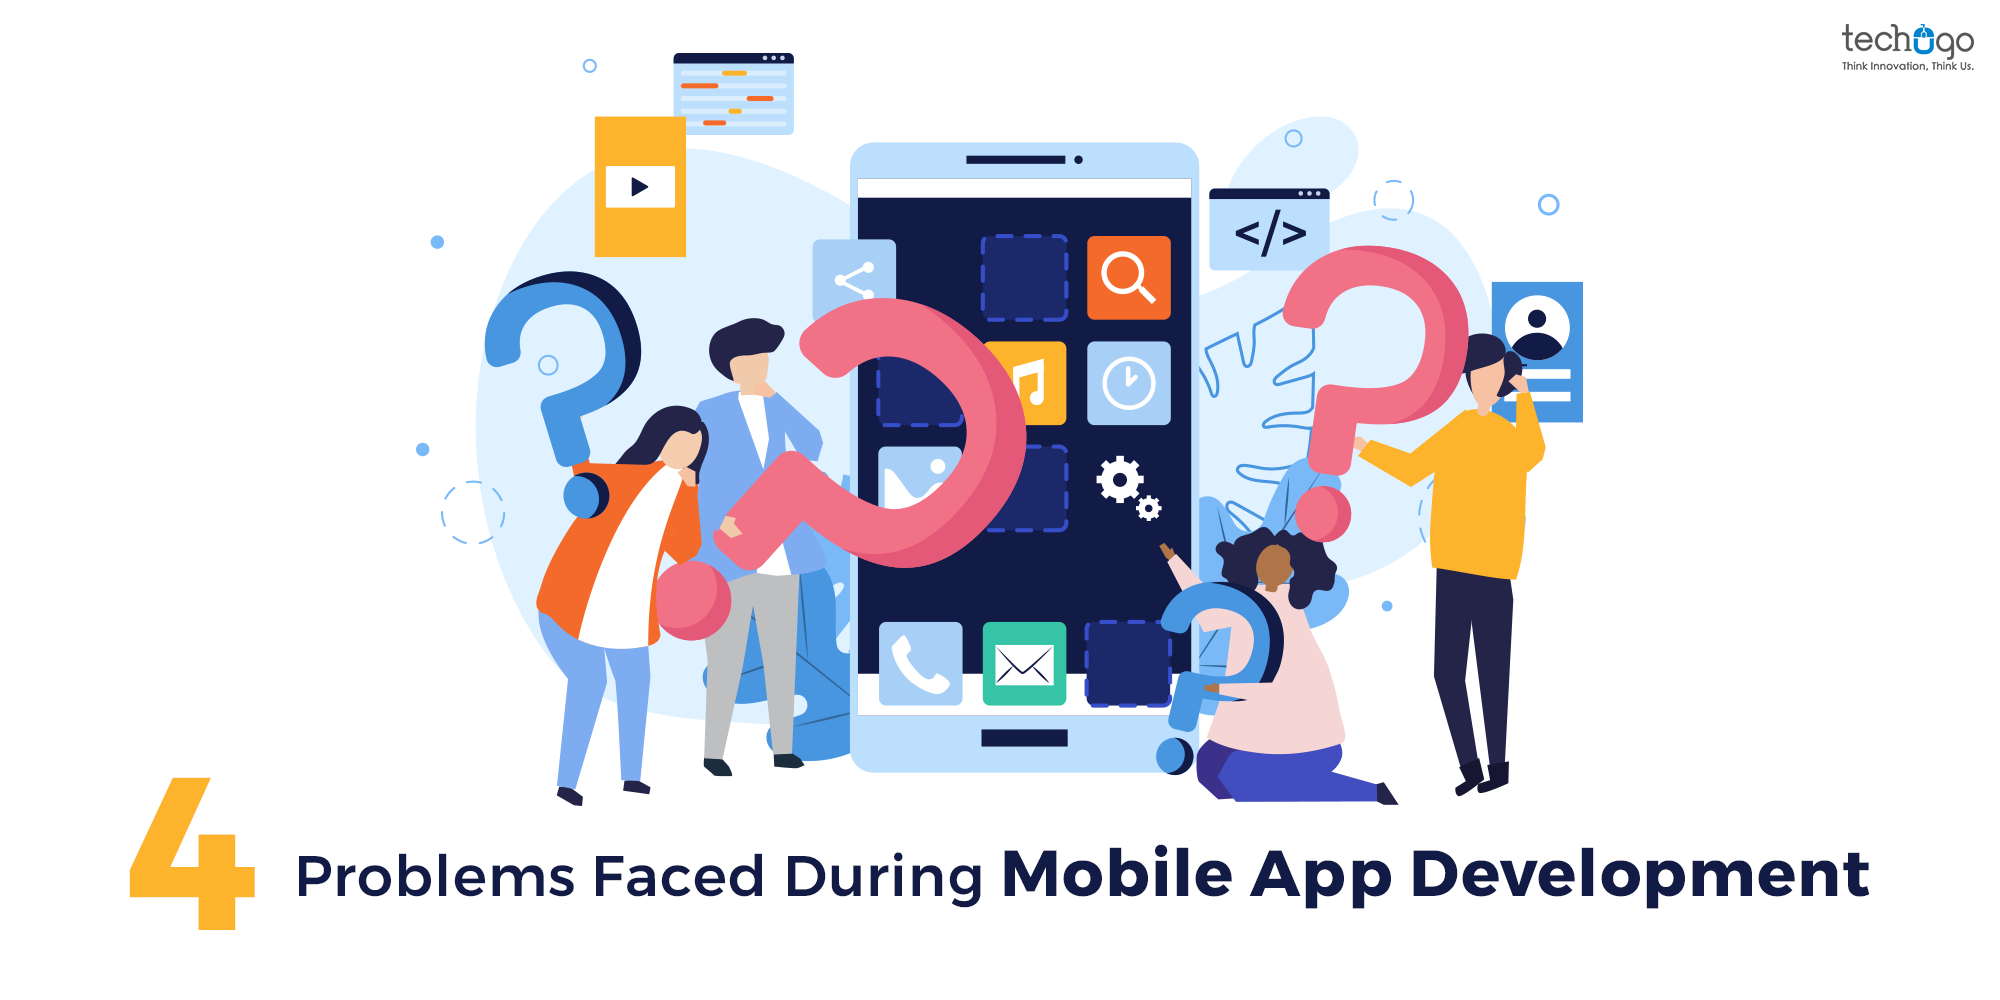 4 Problems Faced During Mobile App Development